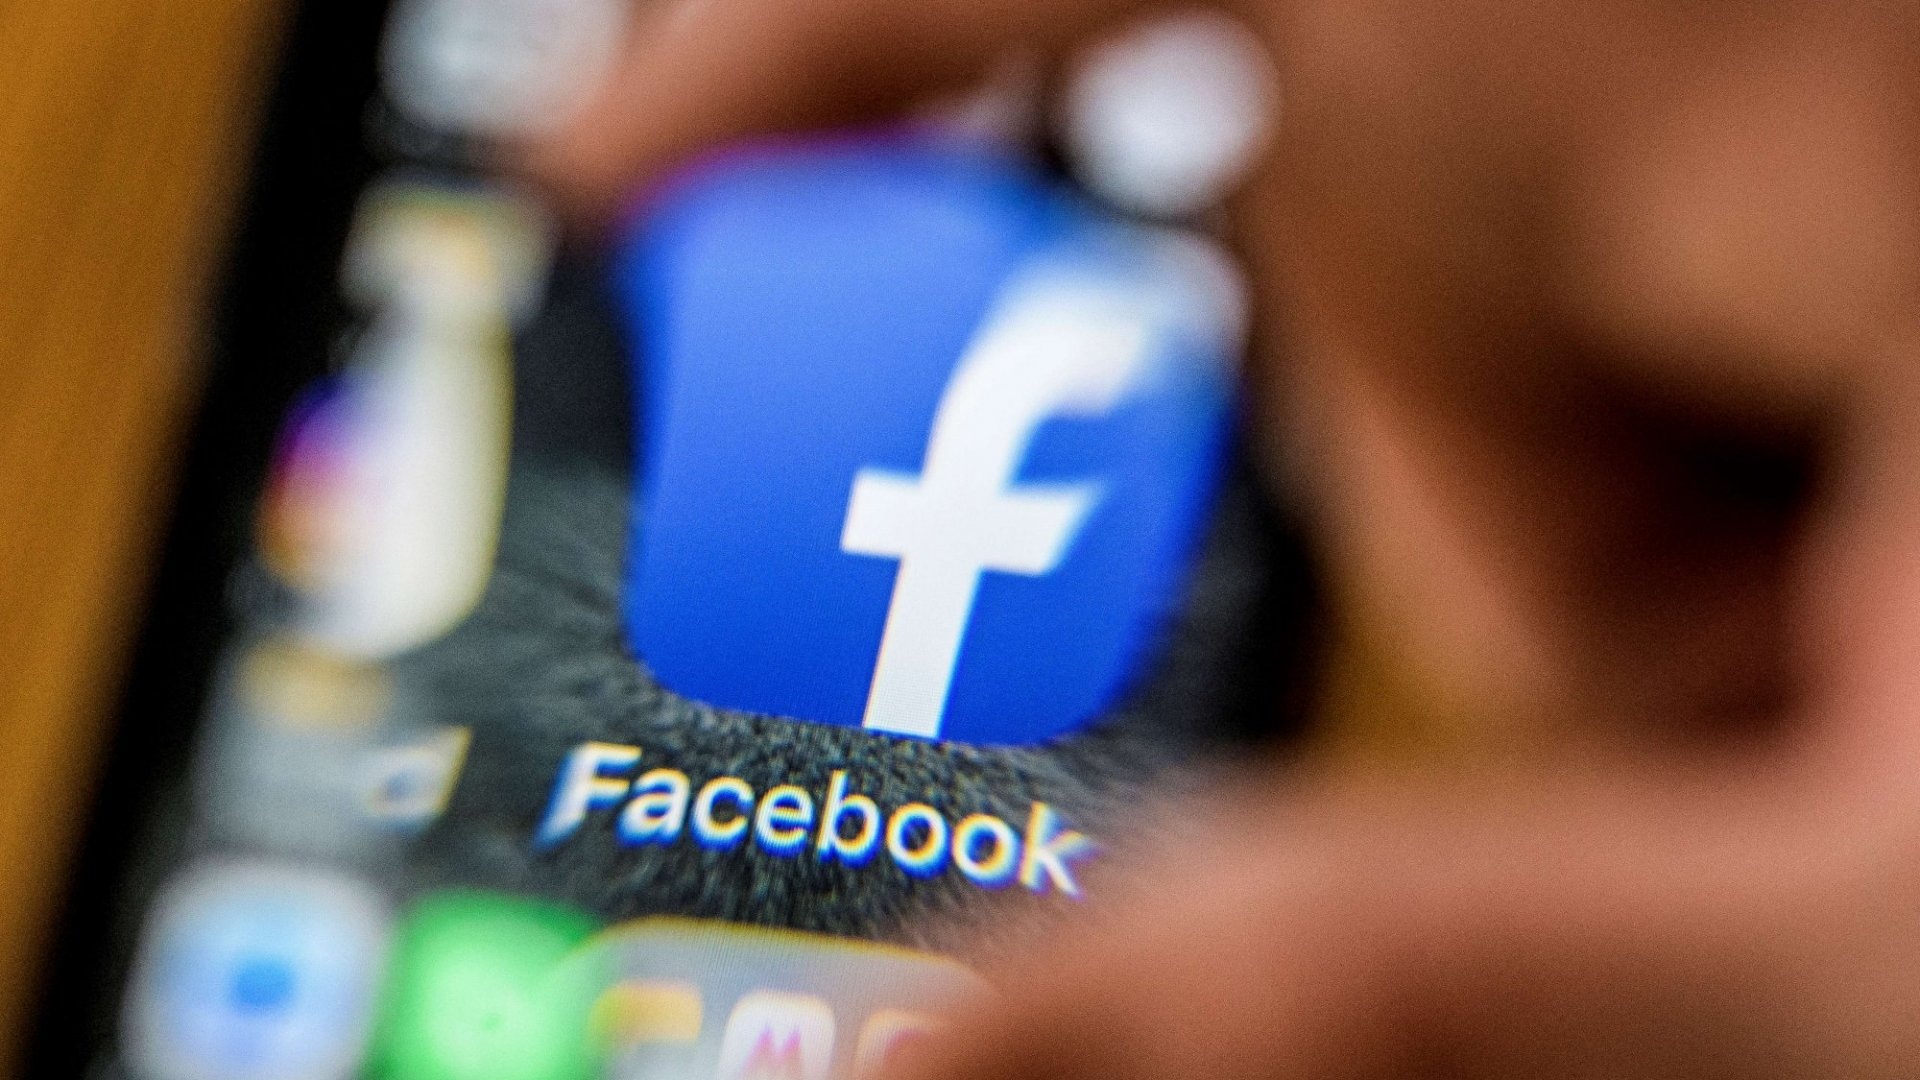 Search Spikes for Delete Facebook: Here's How Many People are Ready to Trash the App